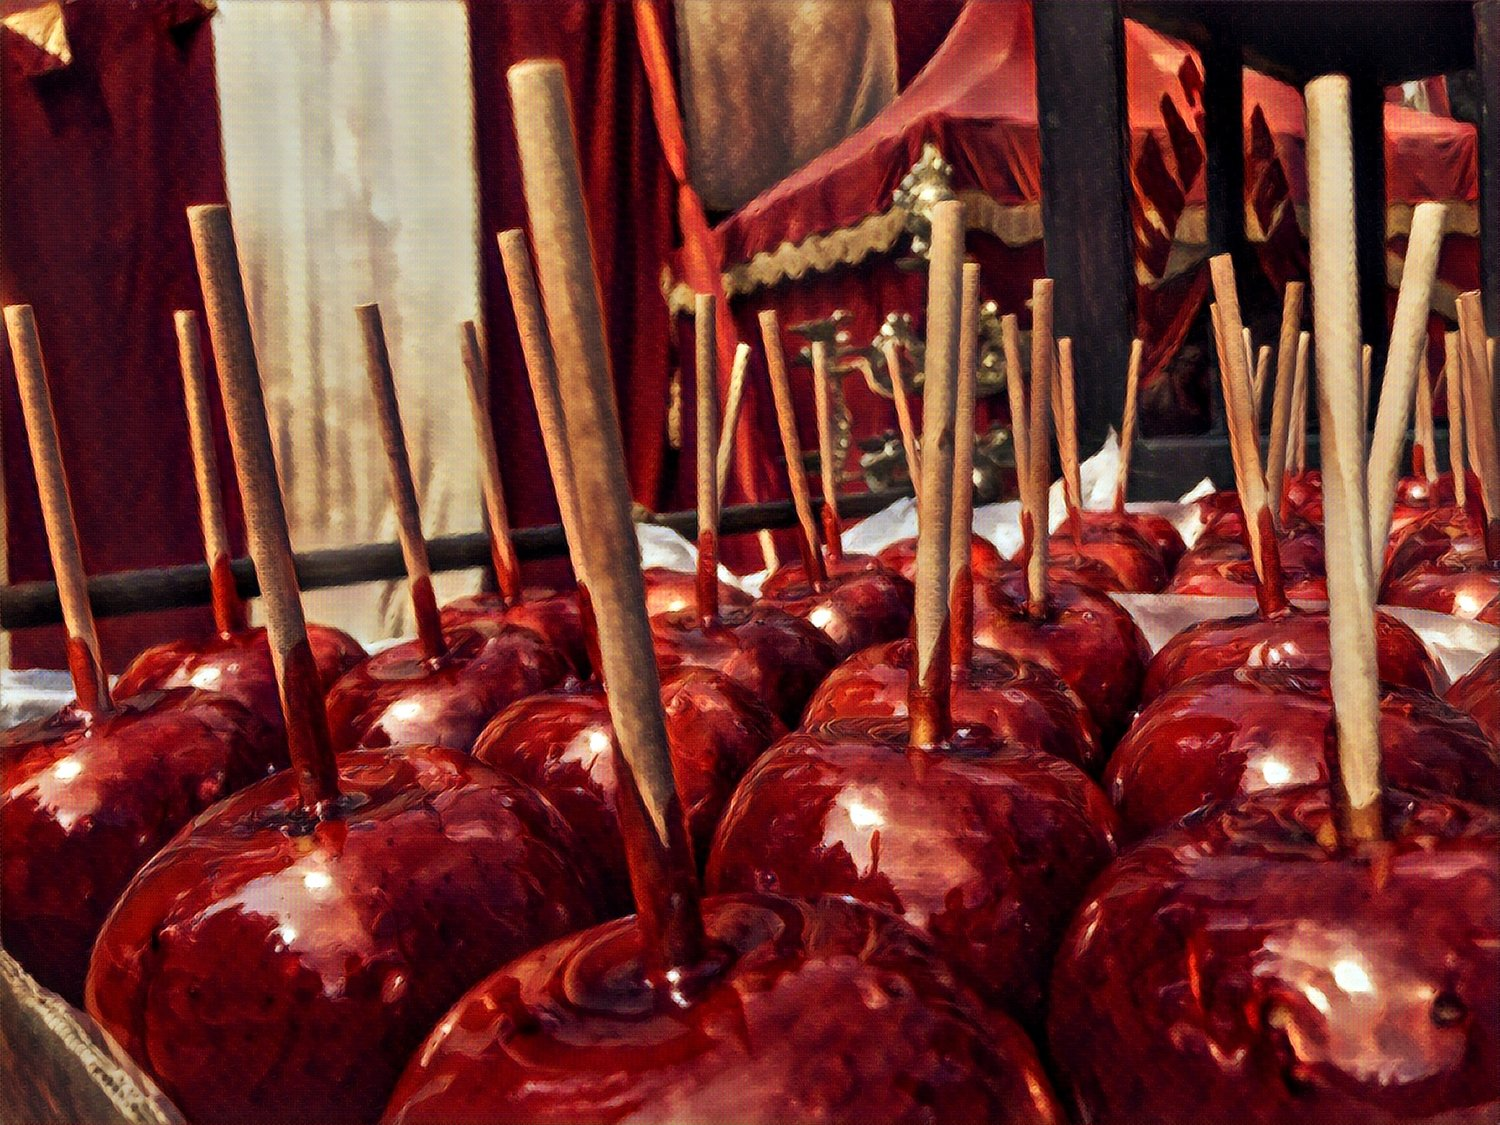 Candied Apples.jpg